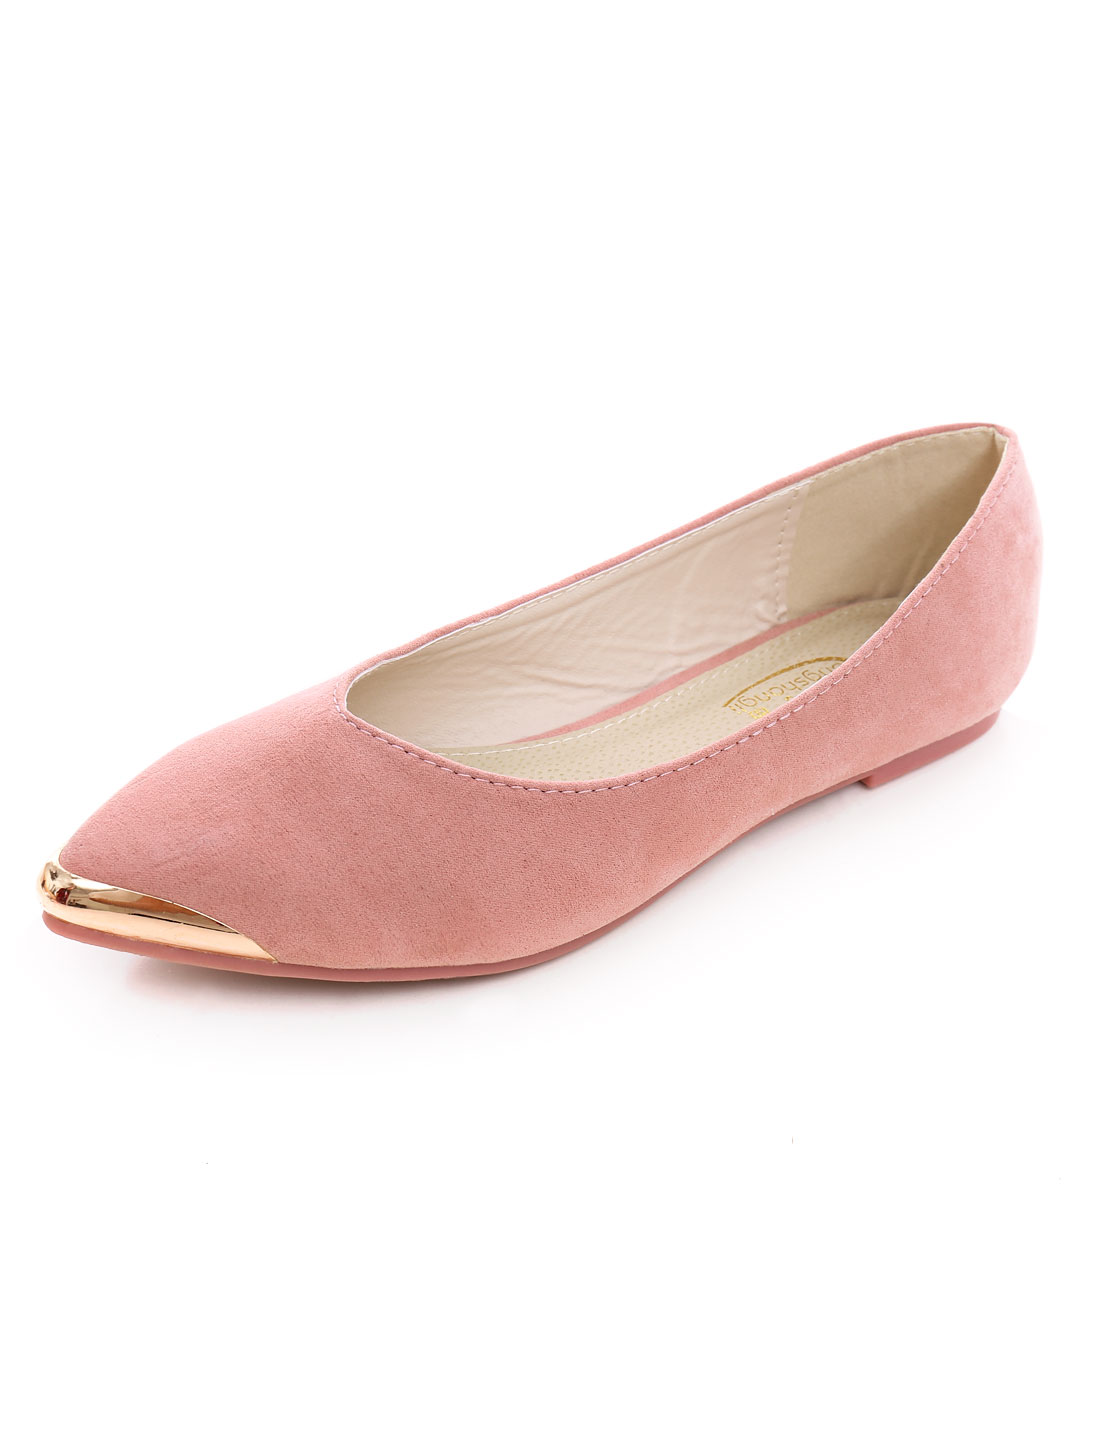 Ladies Metallic Decor Faux Suede V-Cut Vamp Pointed Ballet Flats Peach US 8